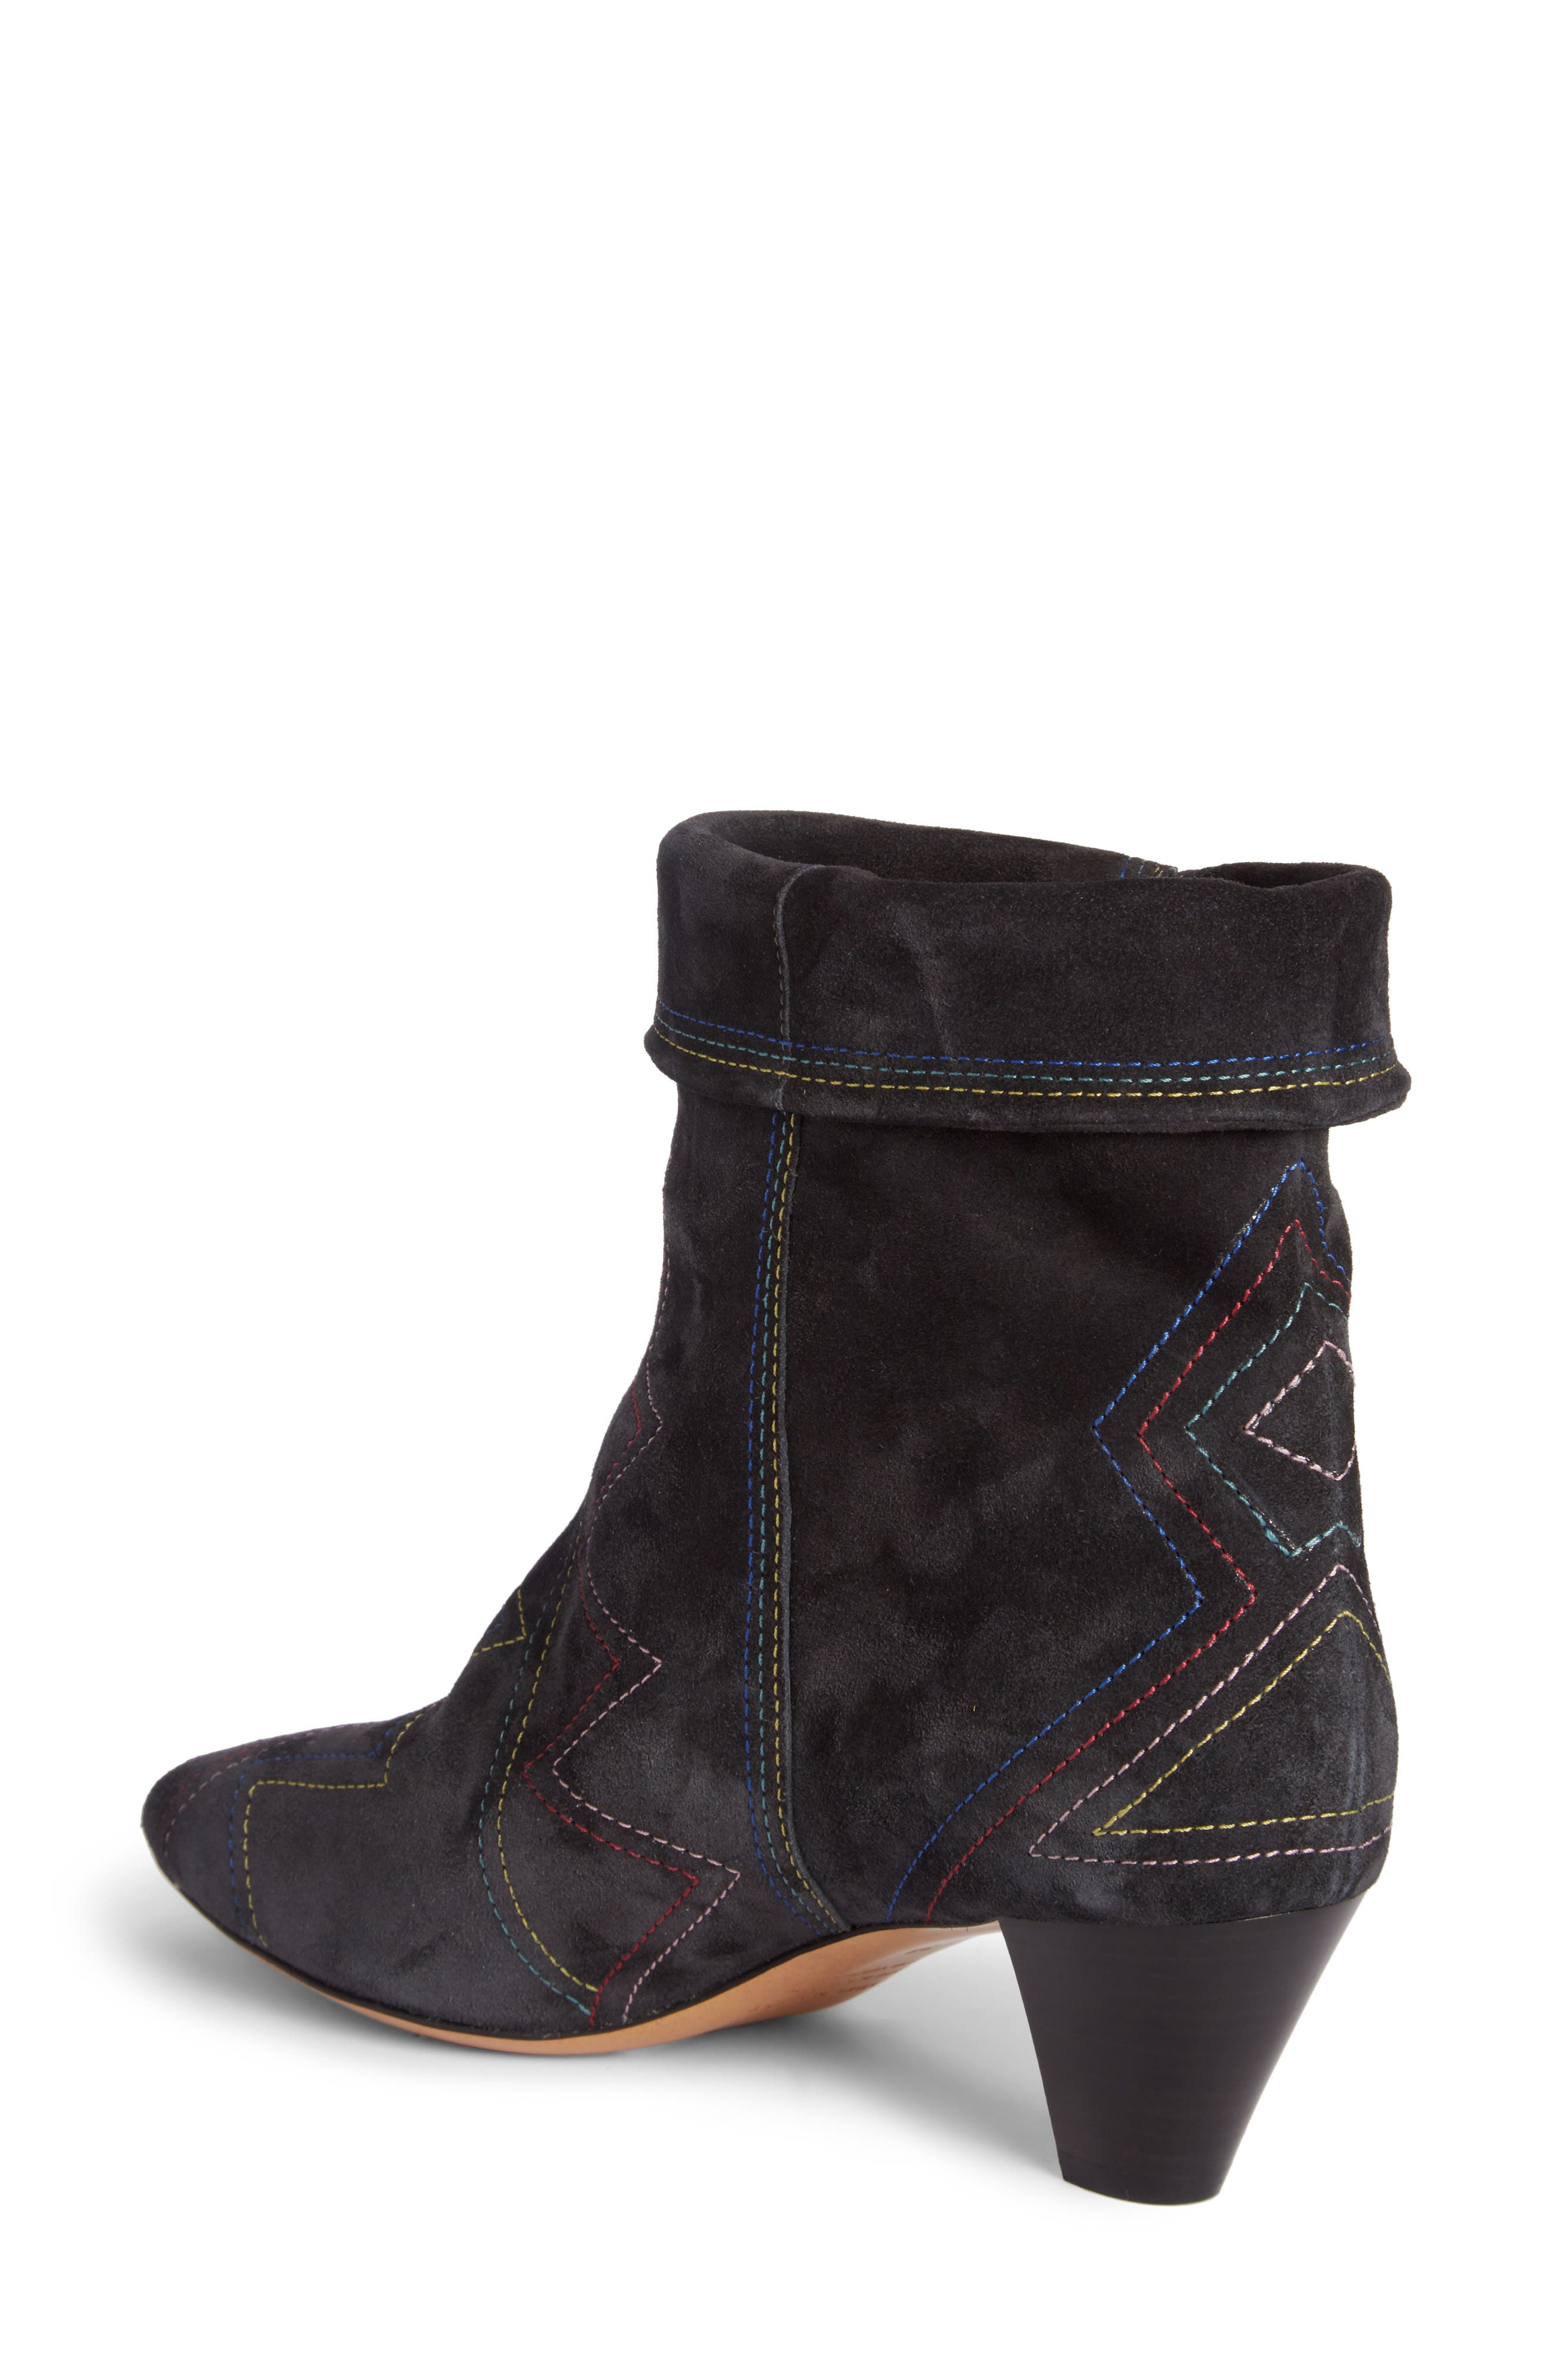 Dyna Topstitched Boot,                             Alternate thumbnail 2, color,                             003